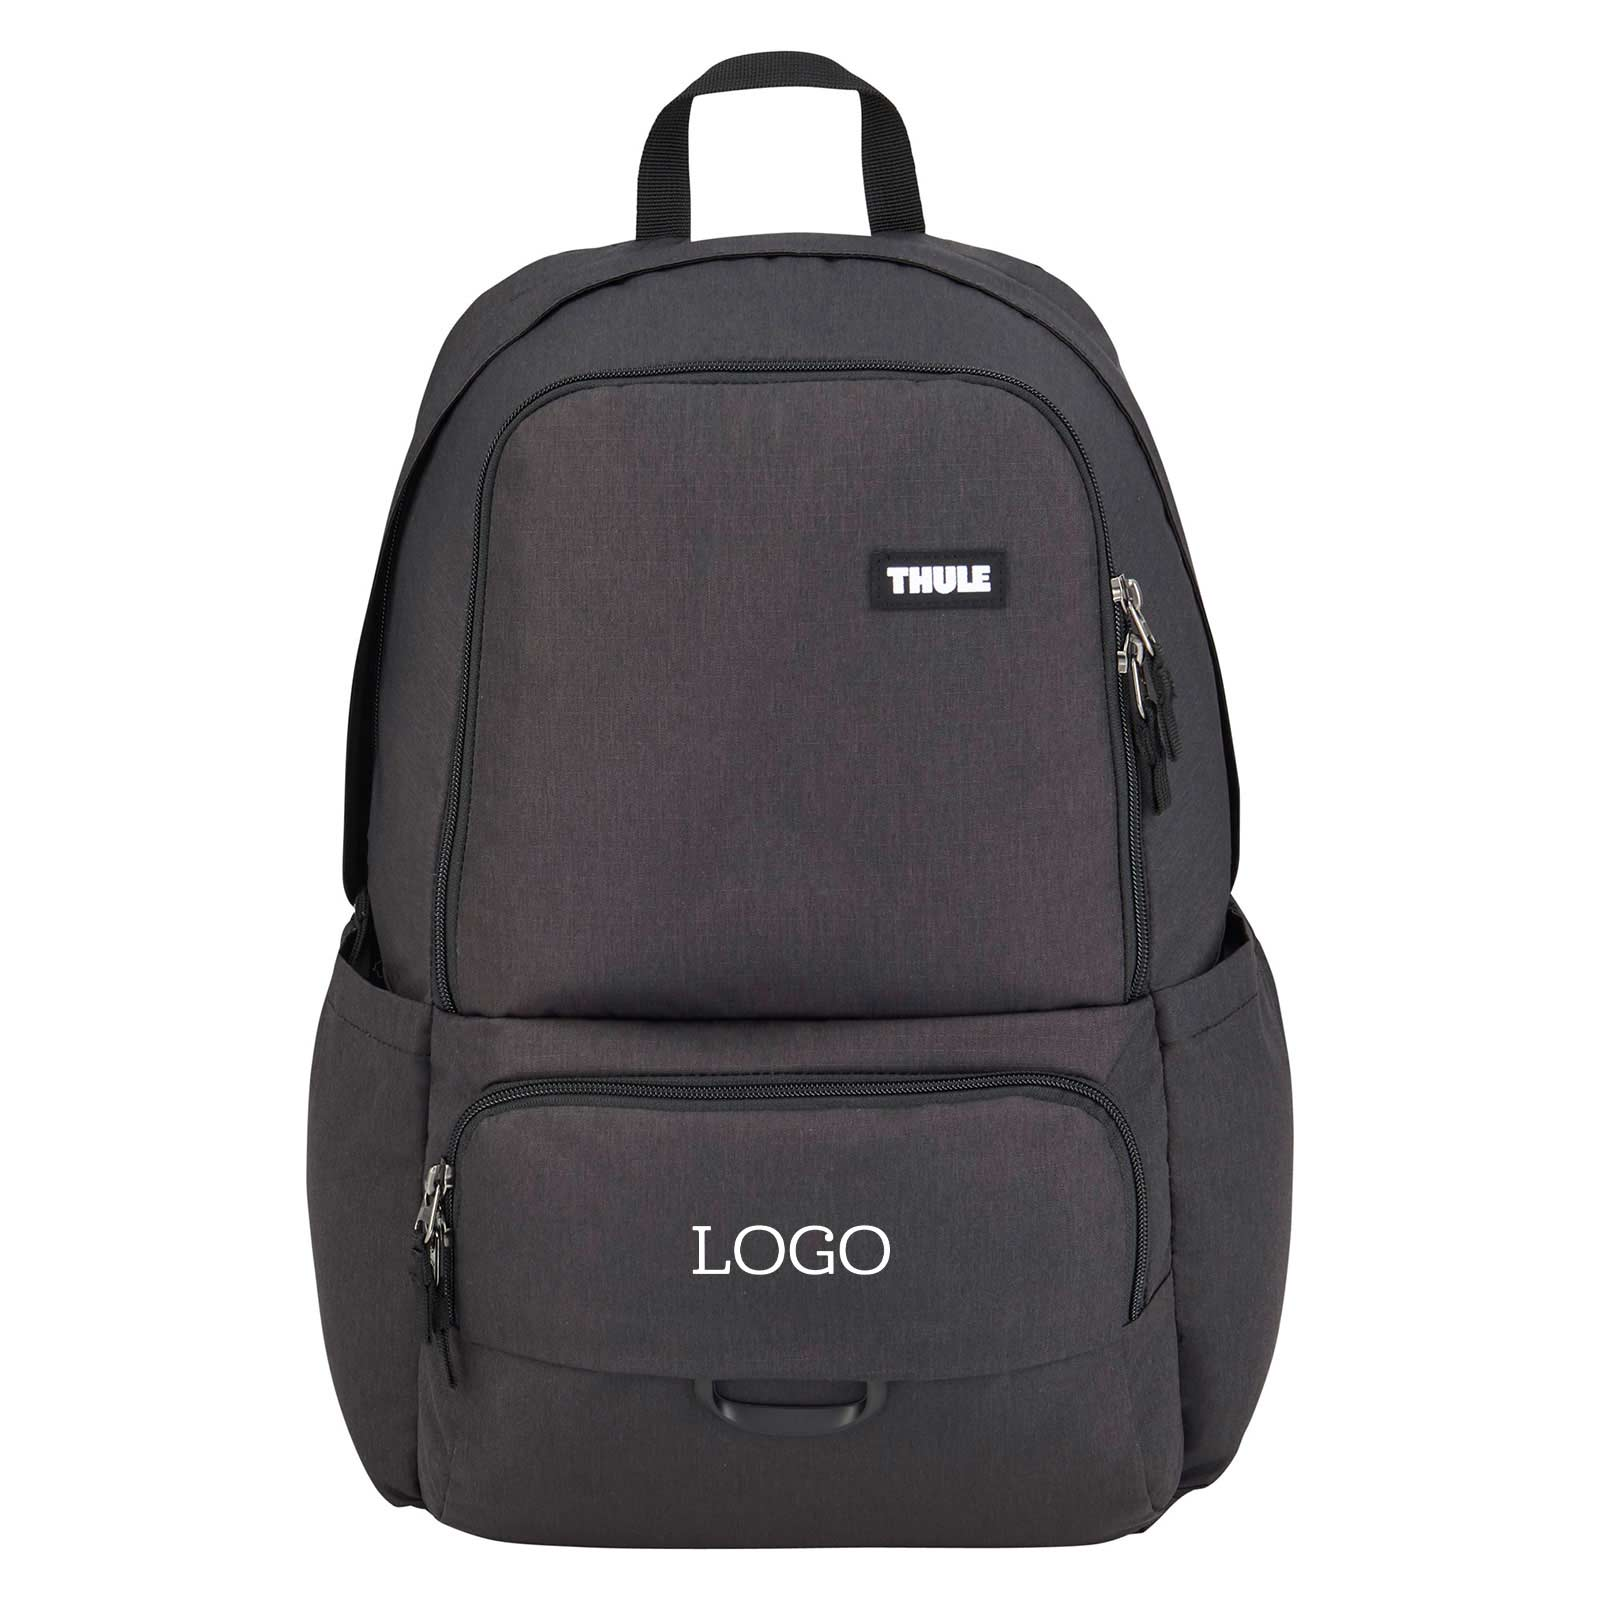 250729 aptitude backpack one location embroidered